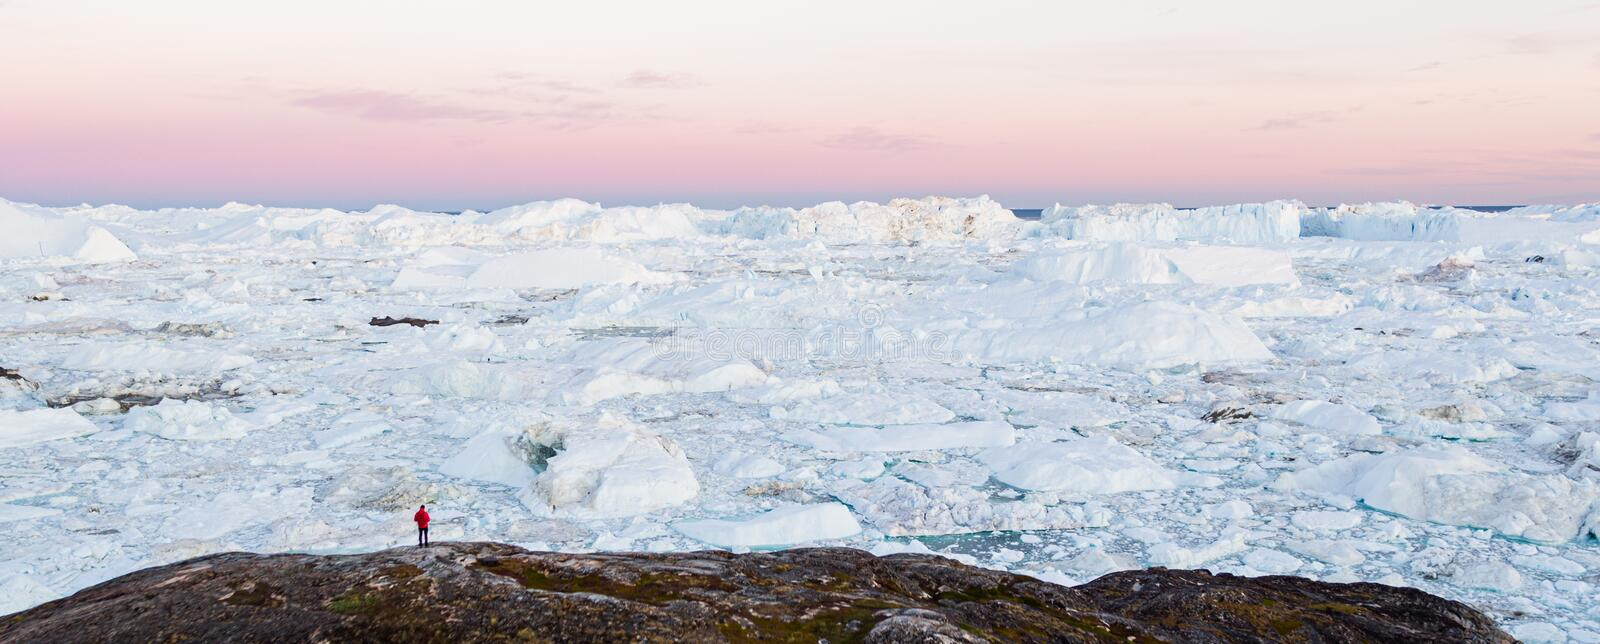 Global Warming and Climate Change concept - Travel adventure in Arctic landscape stock photos